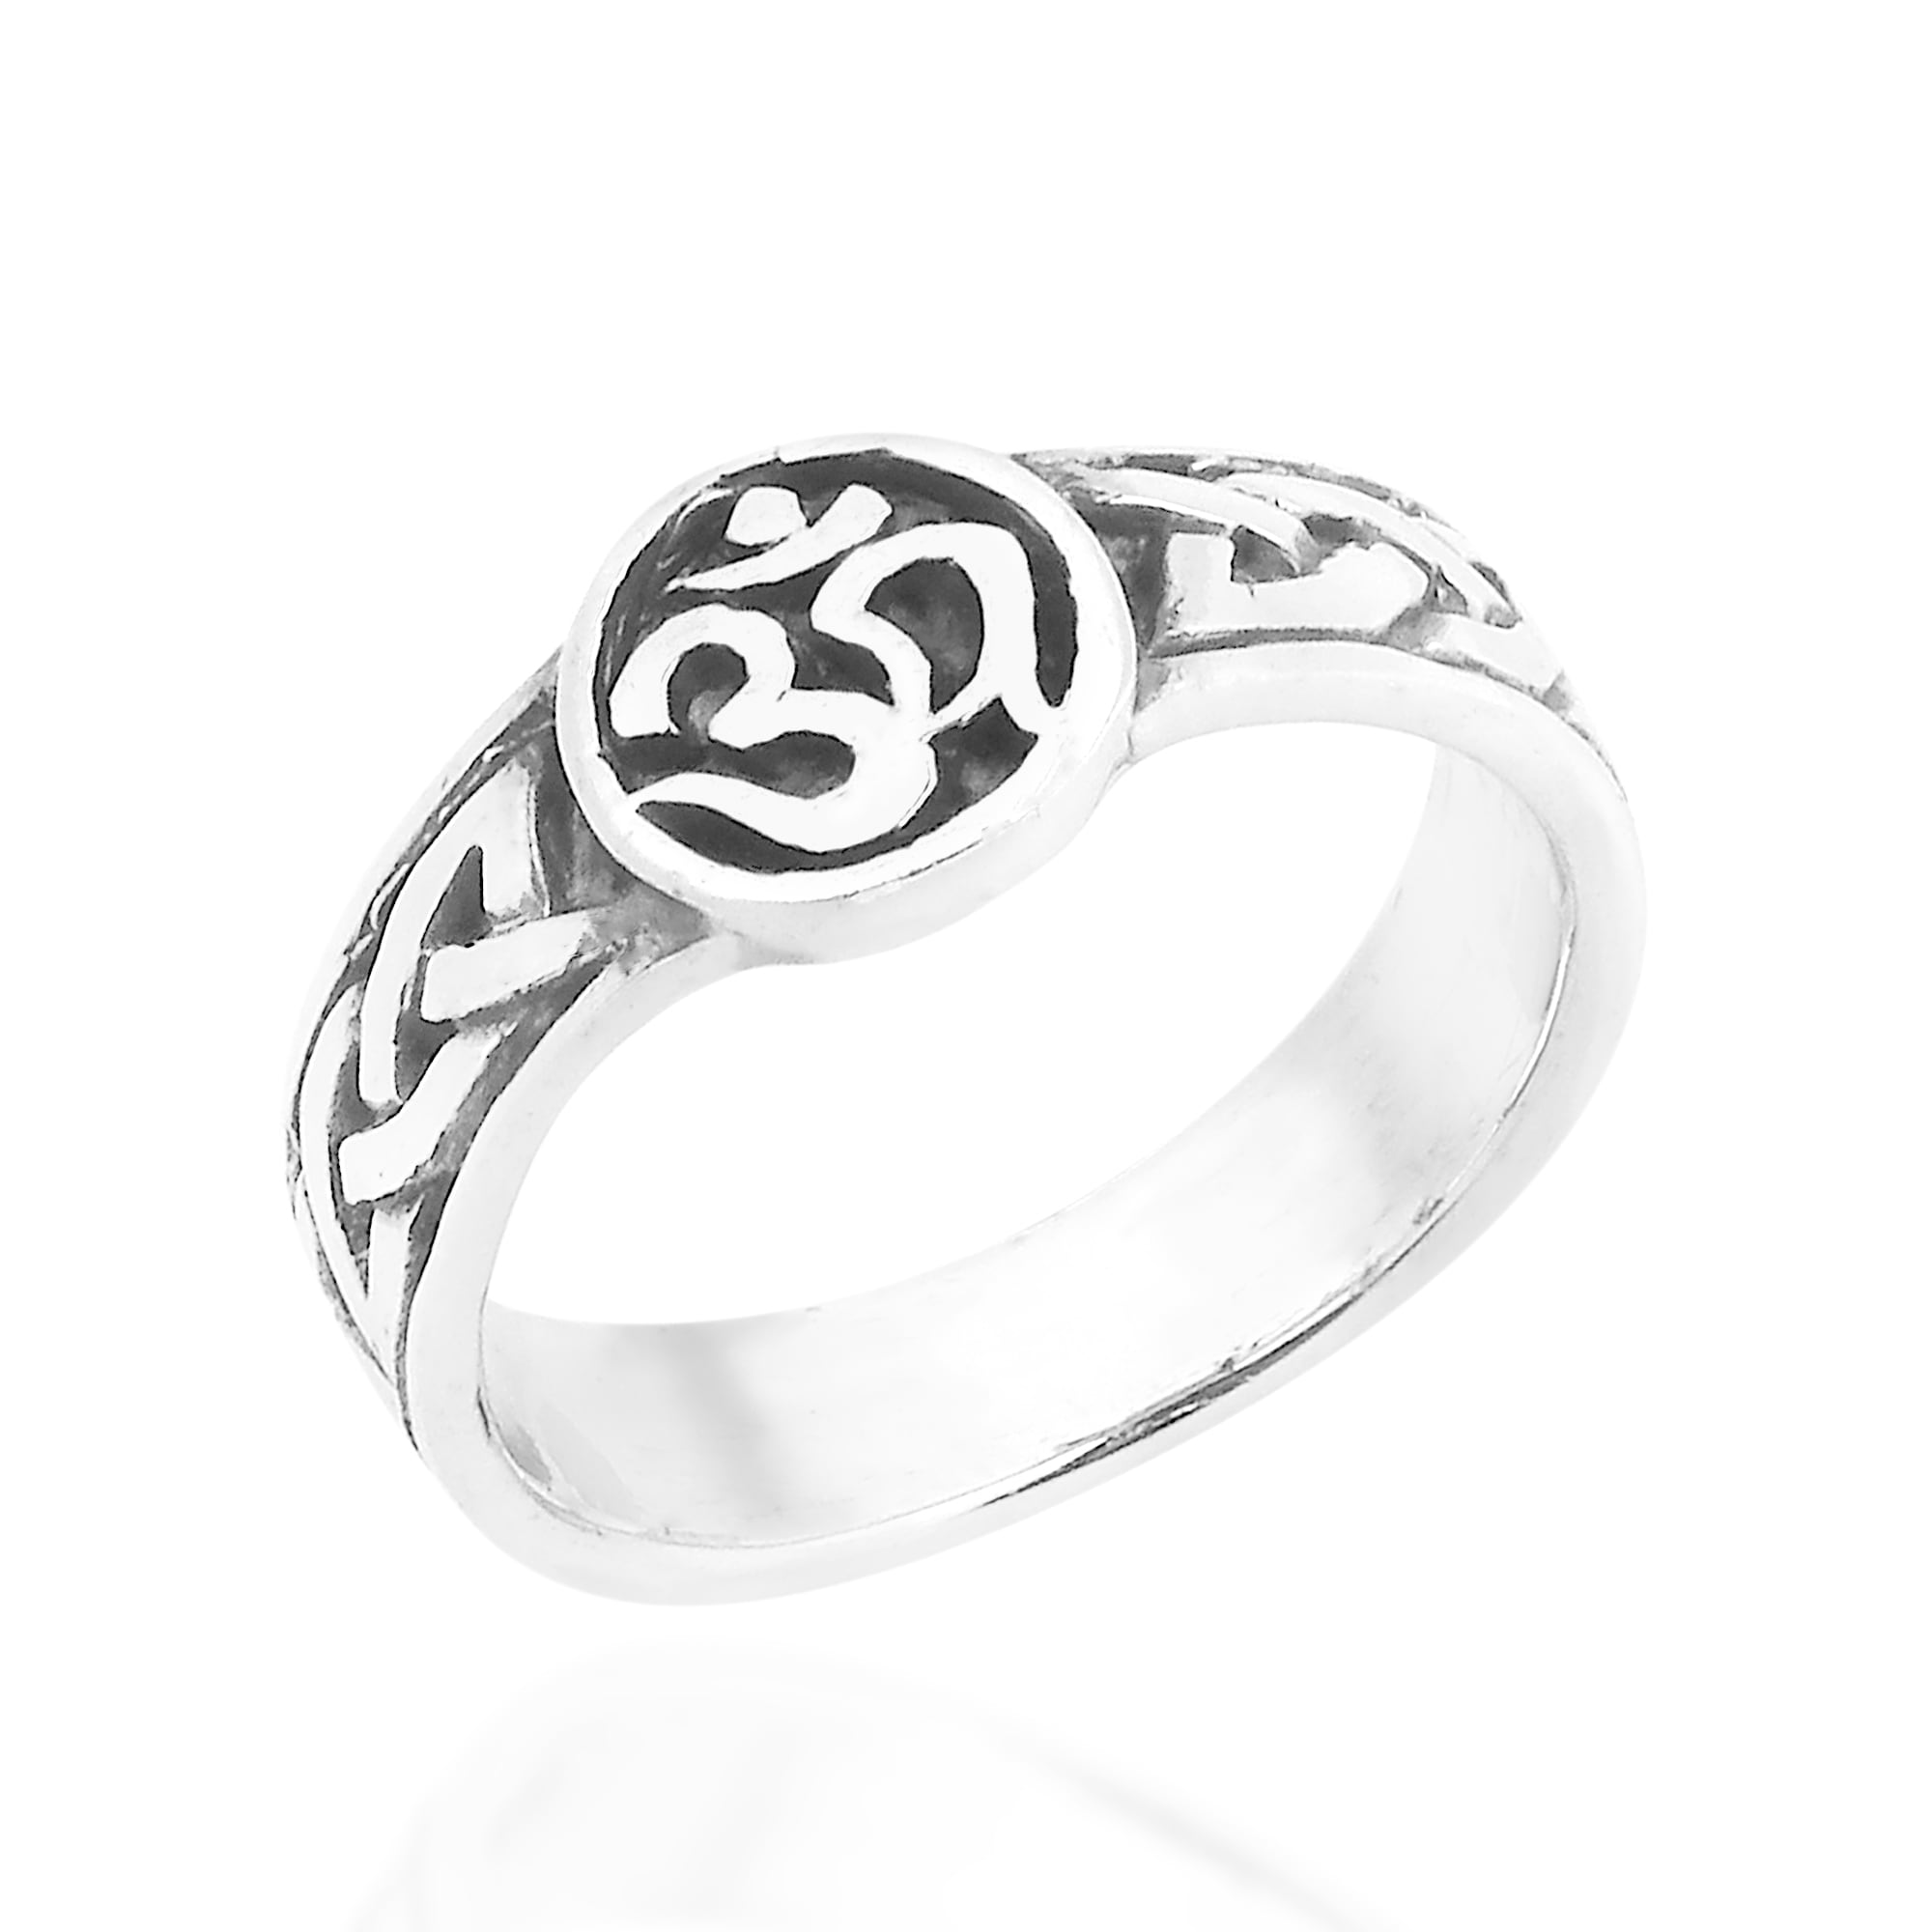 Shop Handmade Peace Symbol Aum Or Ohm 925 Sterling Silver Band Ring